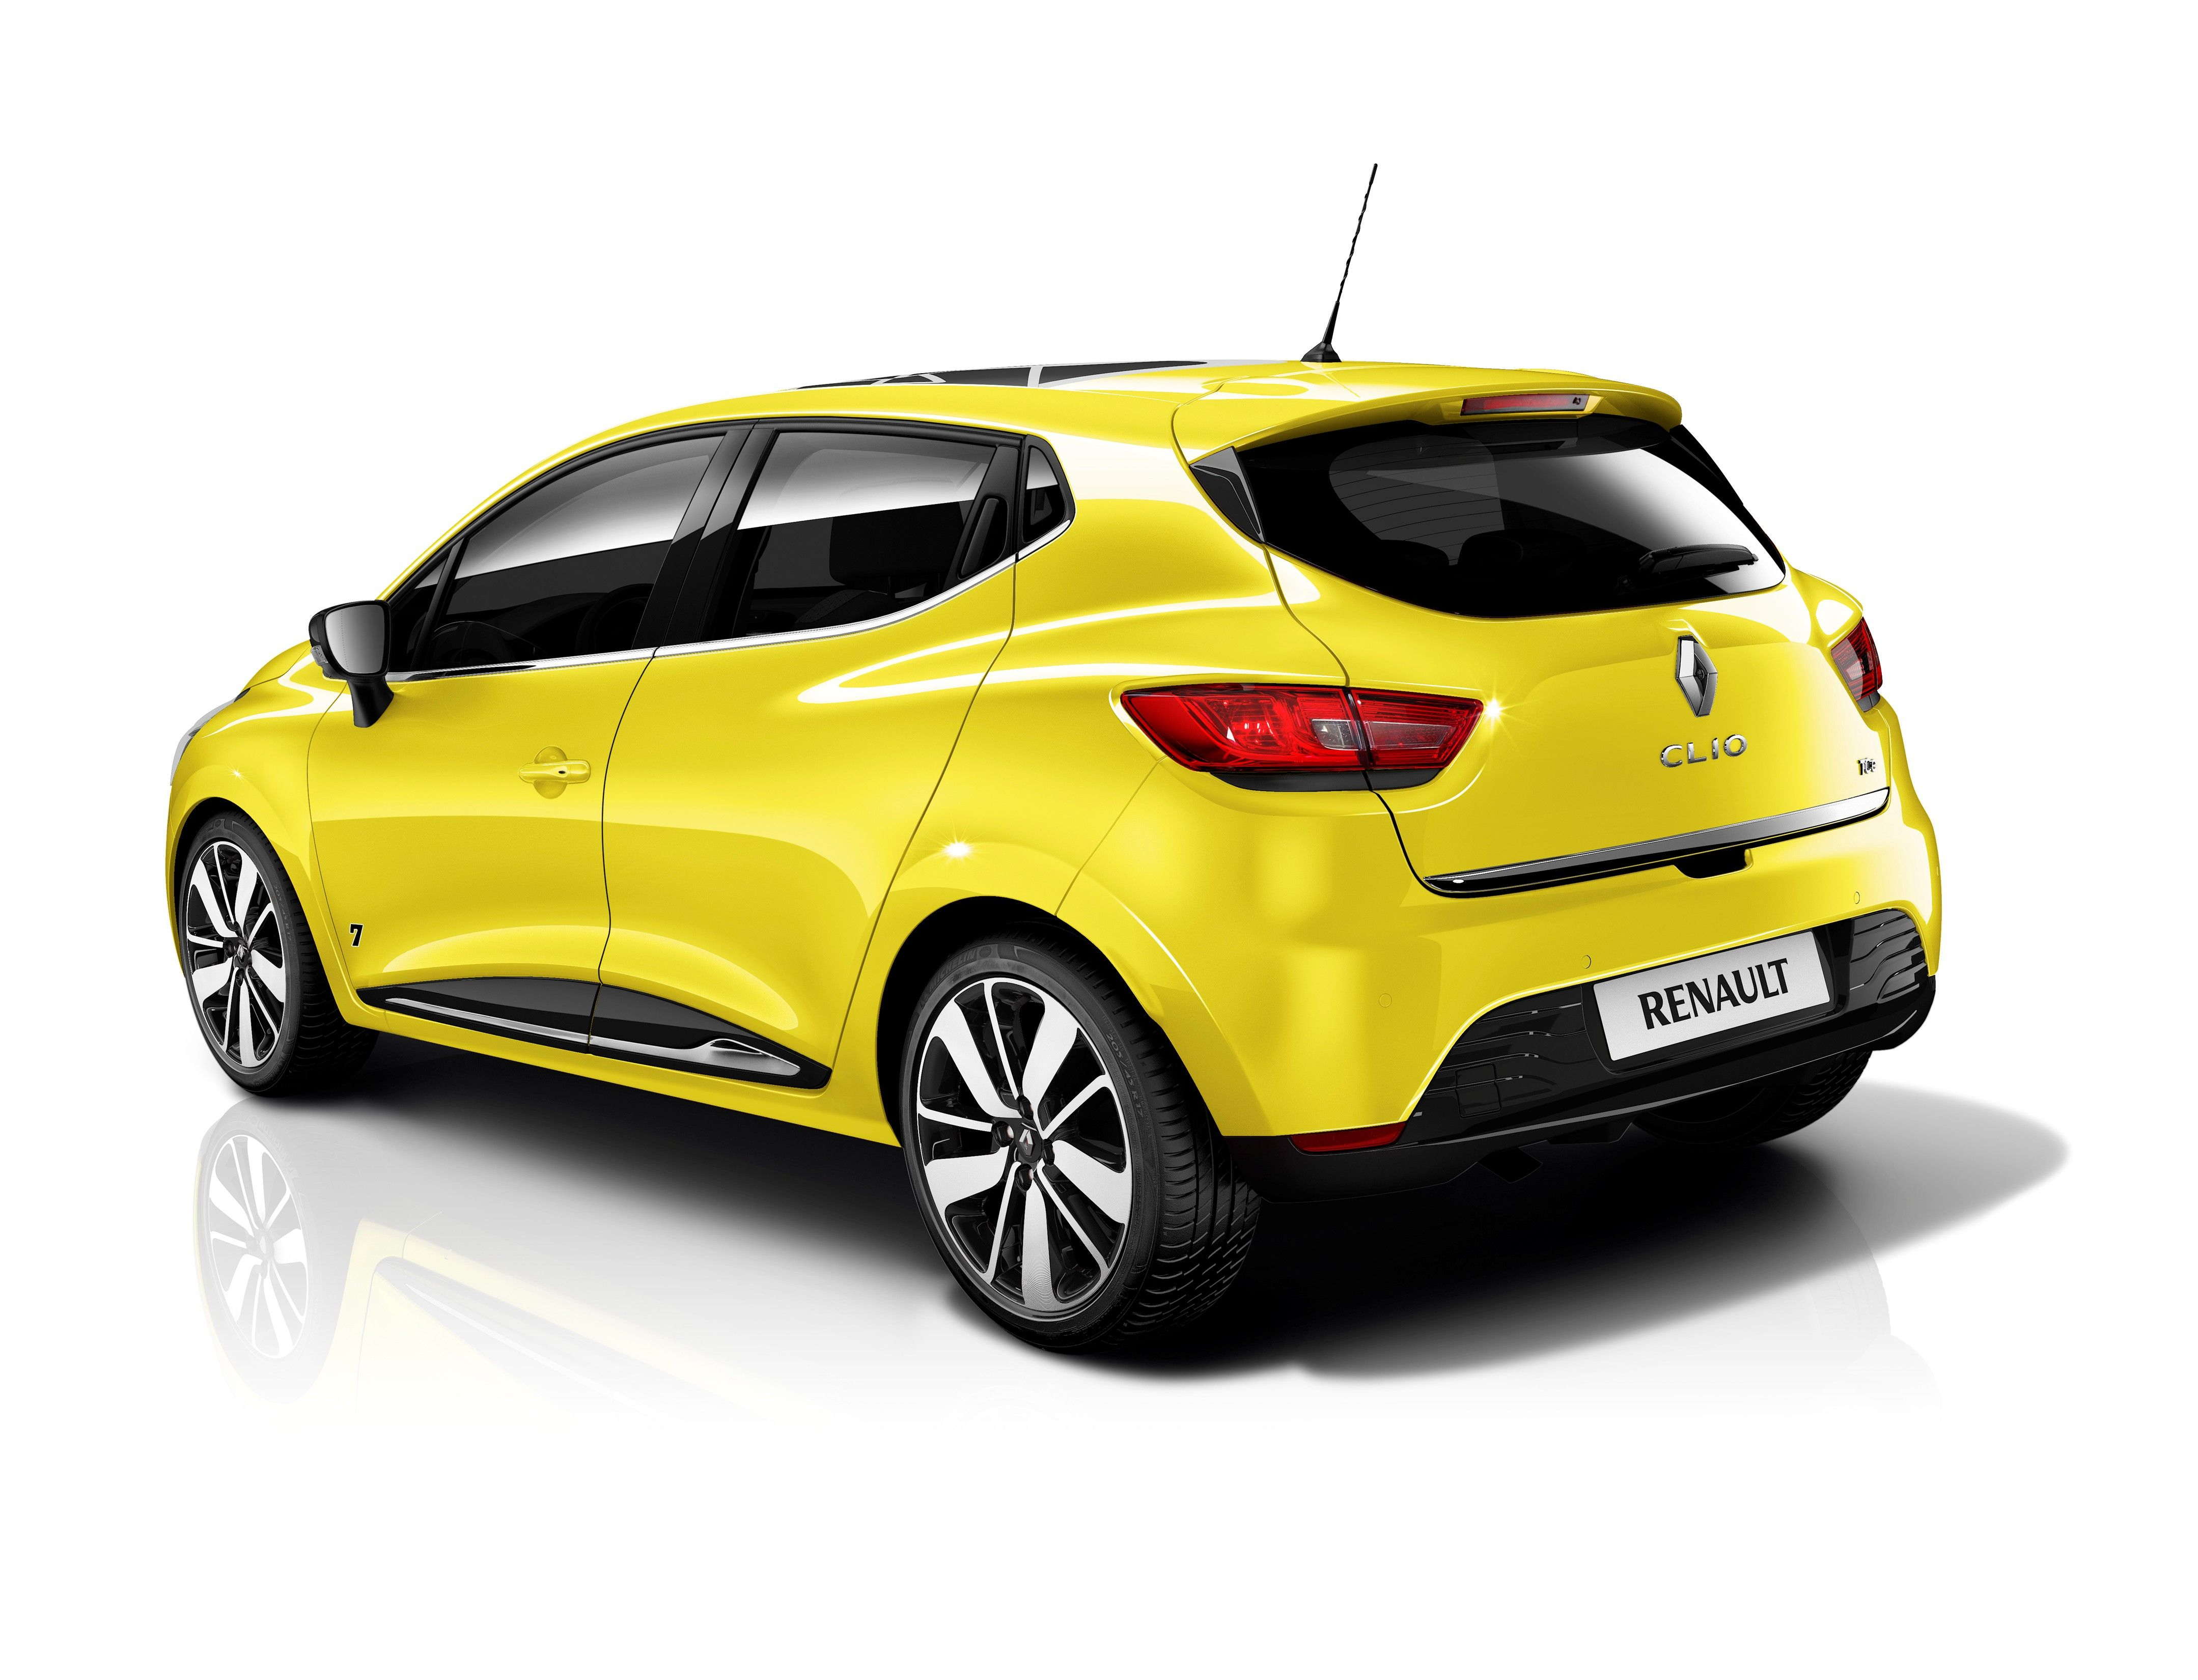 Yellow Renault Clio Rear 3 4 View Auto Francese